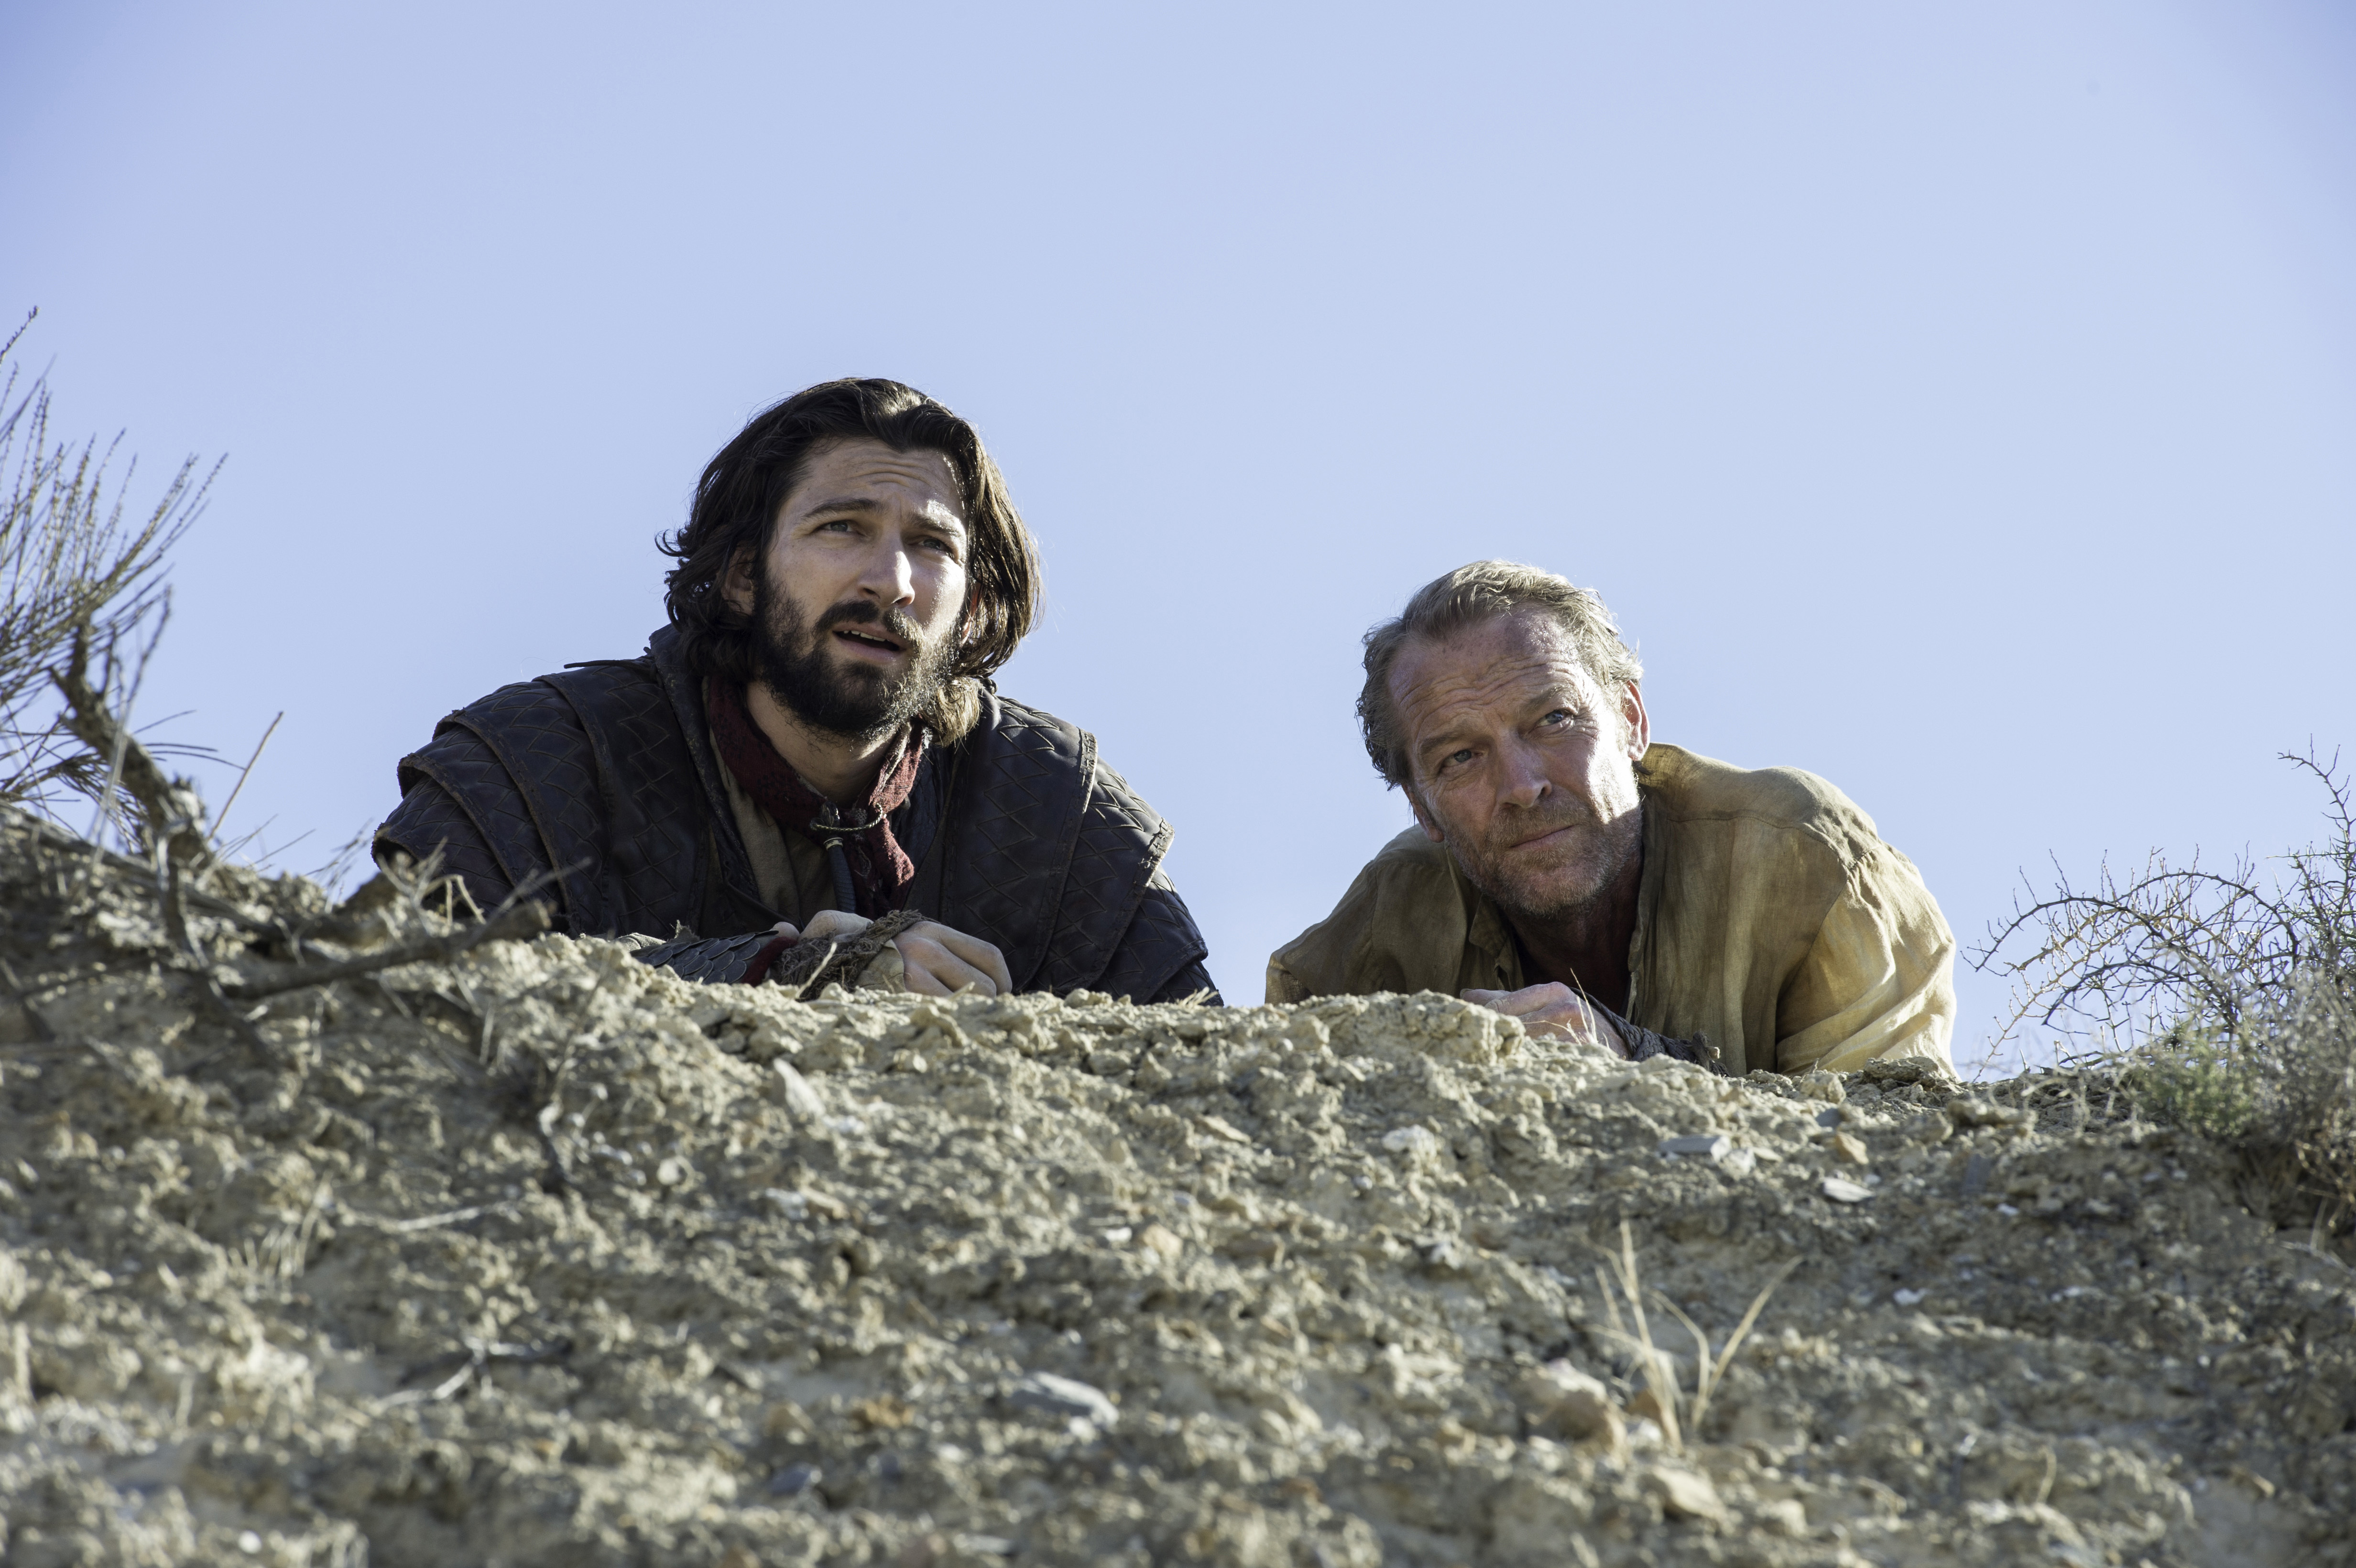 Il trono di spade: Daario e Jorah nell'episodio Book of the Stranger